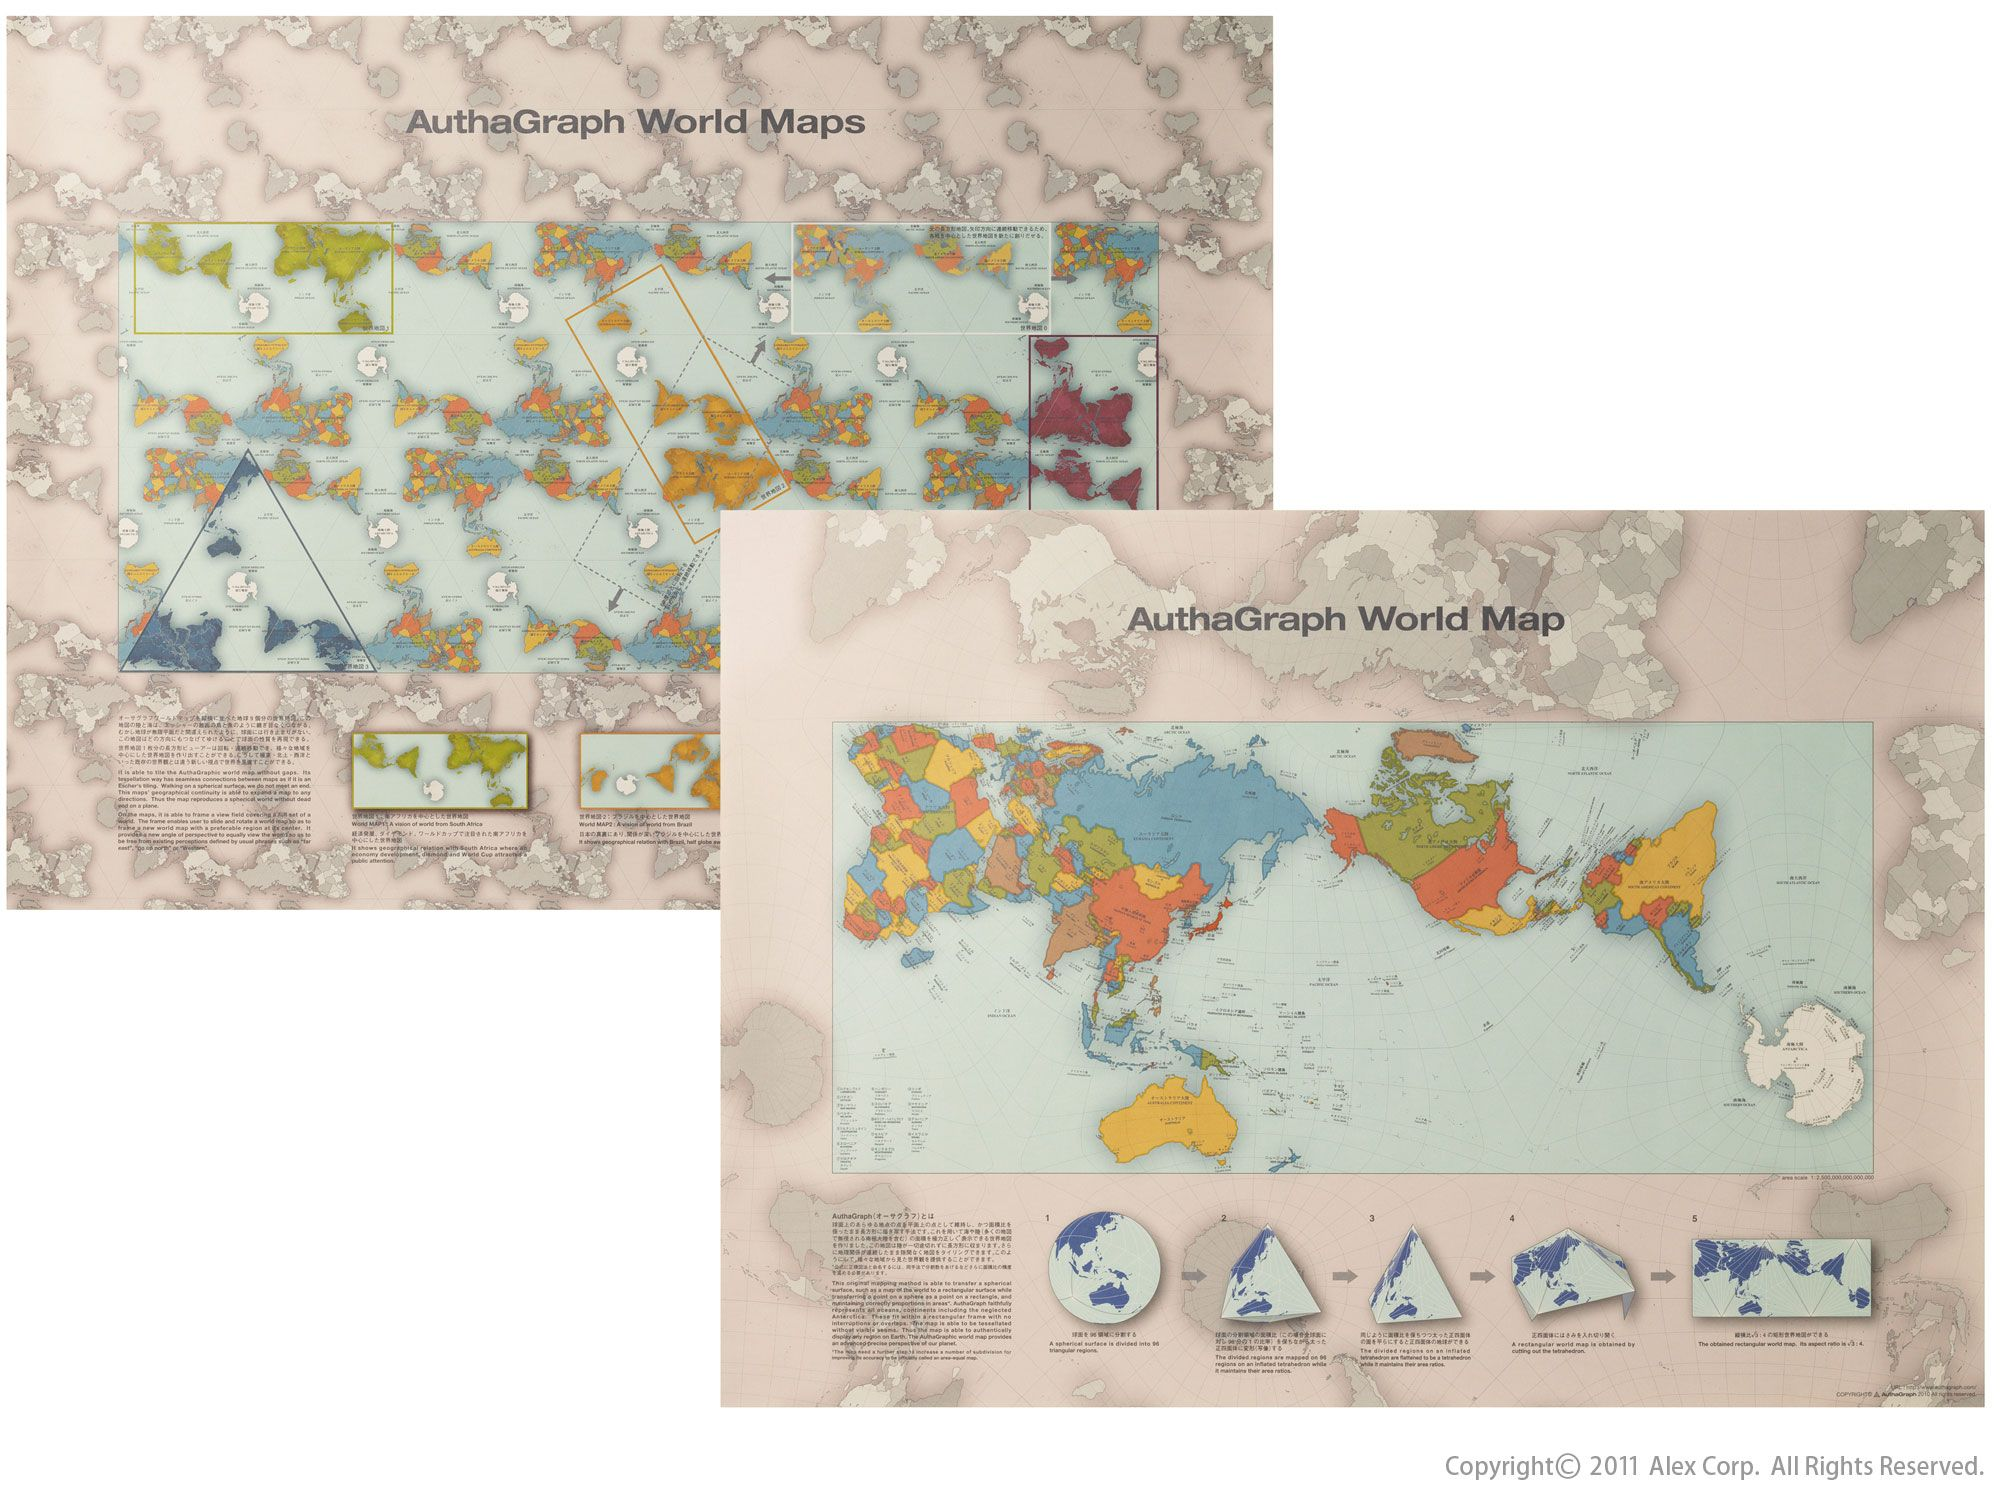 Rejigged authagraph world map representing the true relative sizes rejigged authagraph world map representing the true relative sizes of continents and seas authagraph world map is made by equally dividing a spherical gumiabroncs Image collections